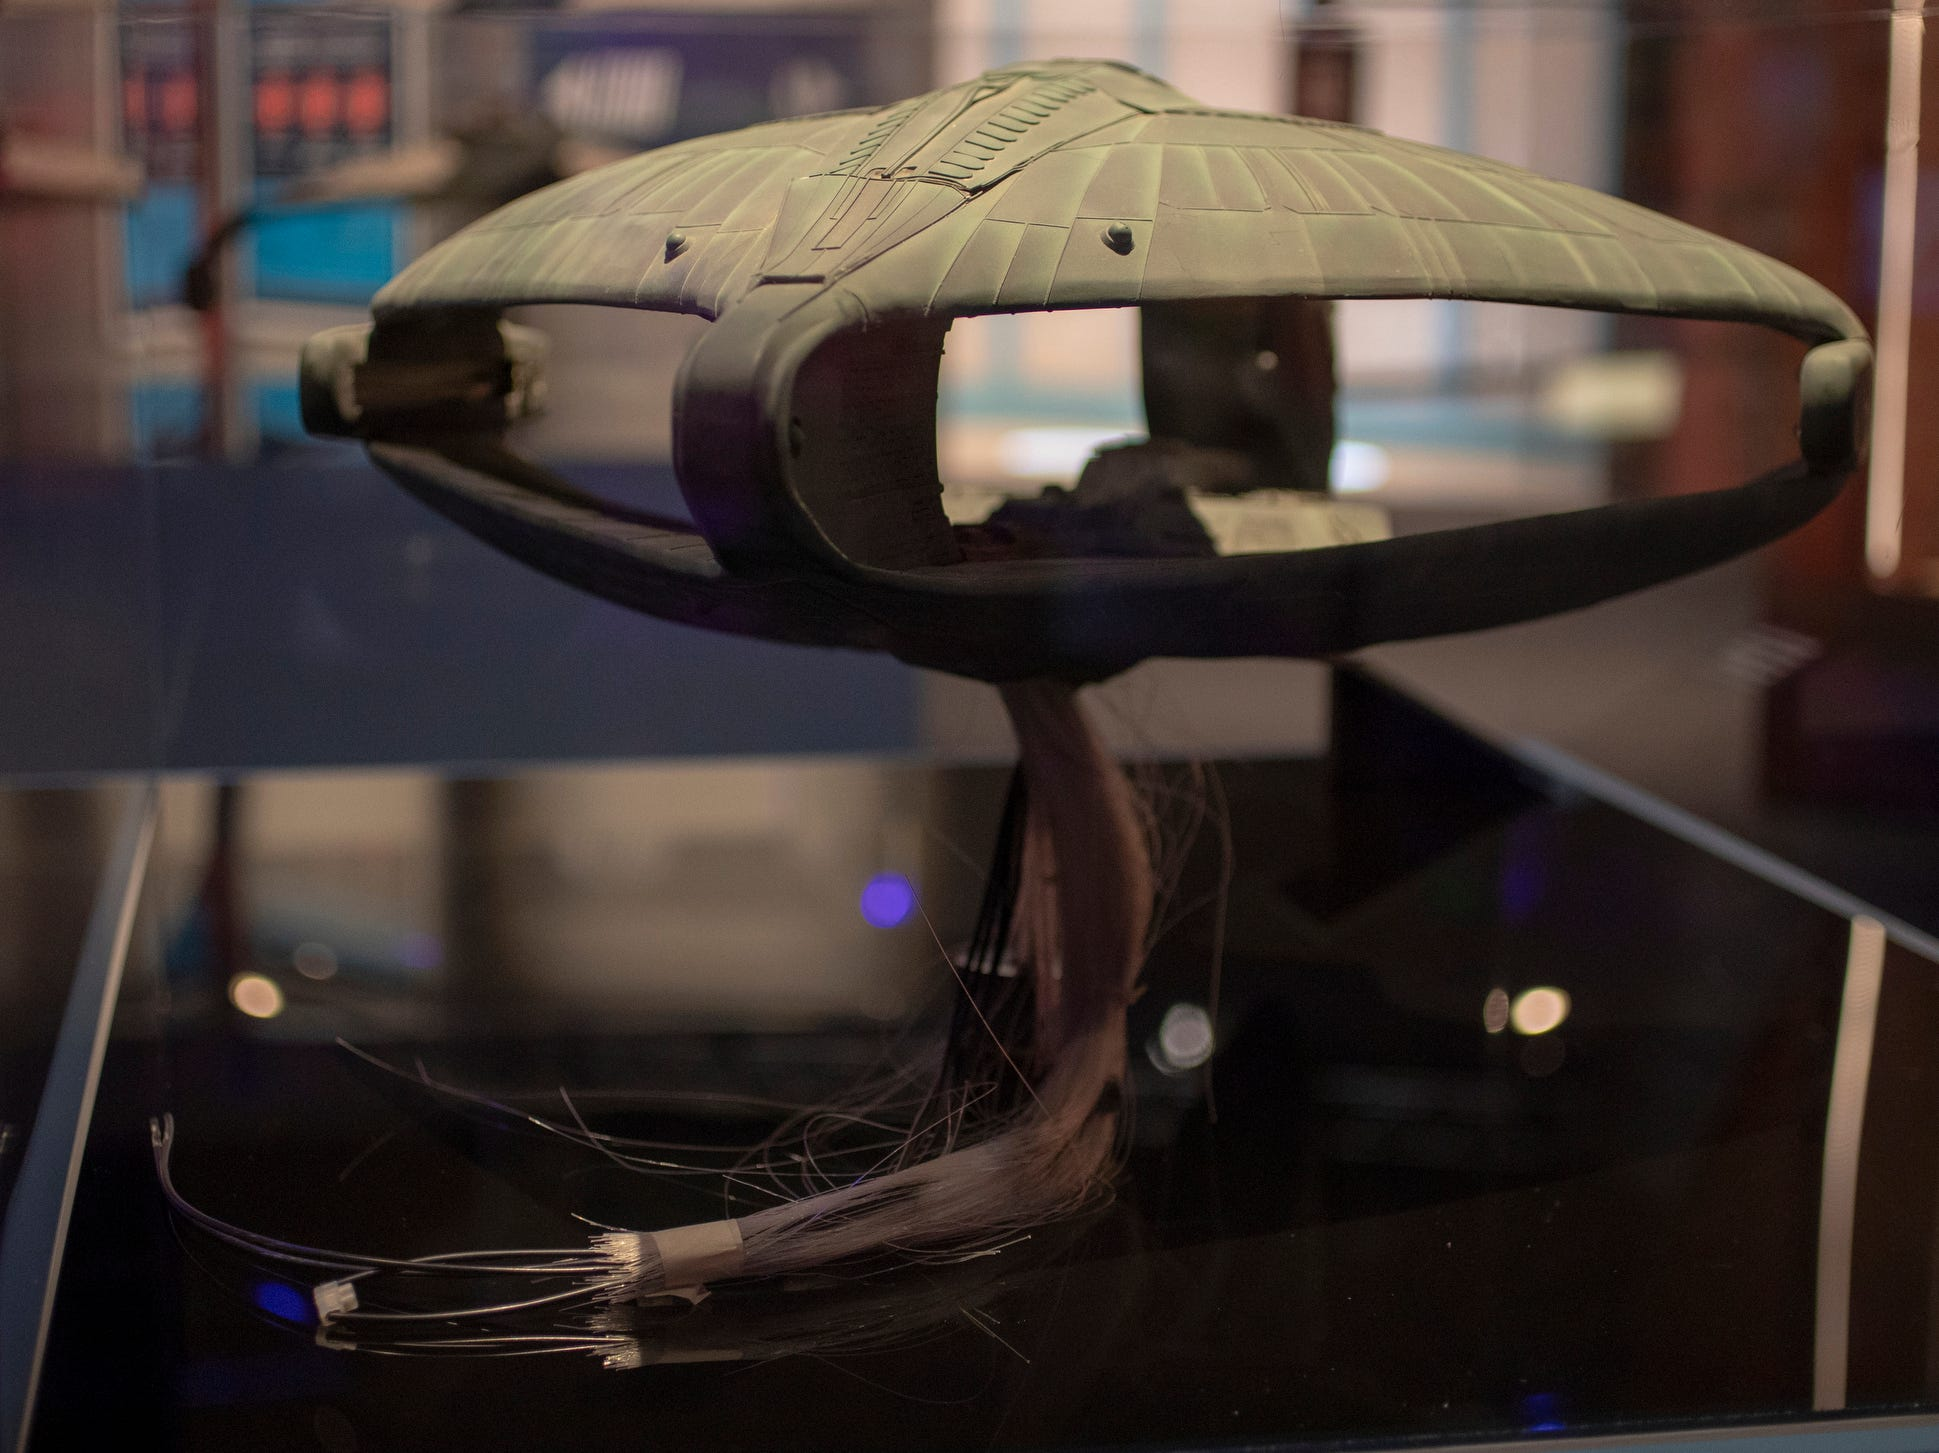 """A model of a Romulan D'deridex-class warbird from """"Star Trek: The Next Generation"""" is seen at The Children's Museum of Indianapolis, Wednesday, Jan. 23, 2019. The """"Star Trek: Exploring New Worlds"""" exhibit is made up of set pieces, ship models and outfits used during various Star Trek shows and movies and is on display at the museum from Feb. 2 through April 7, 2019."""